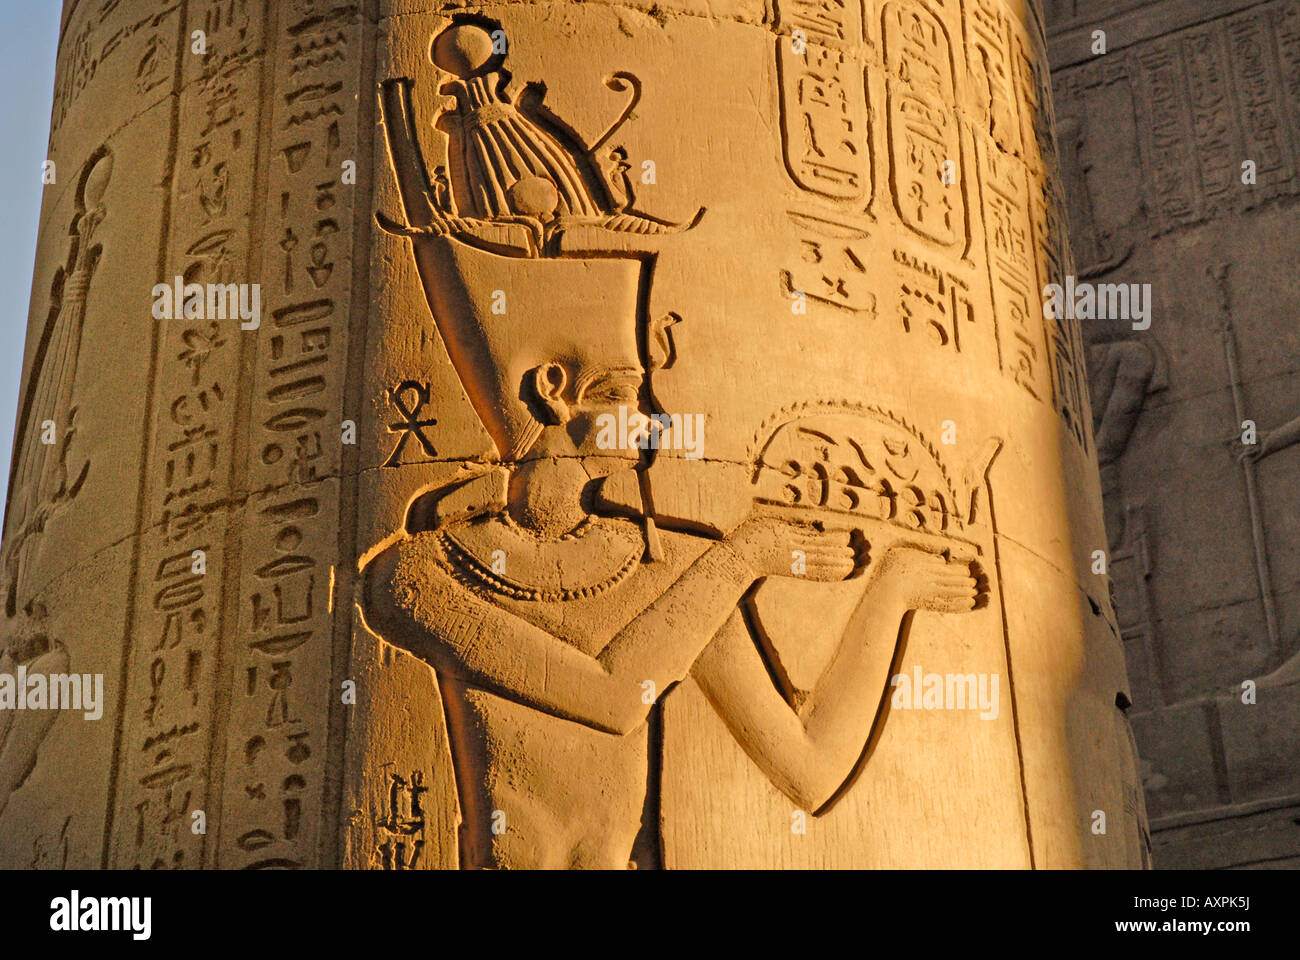 Pharaoh Egypt Medicine Stock Photos & Pharaoh Egypt Medicine